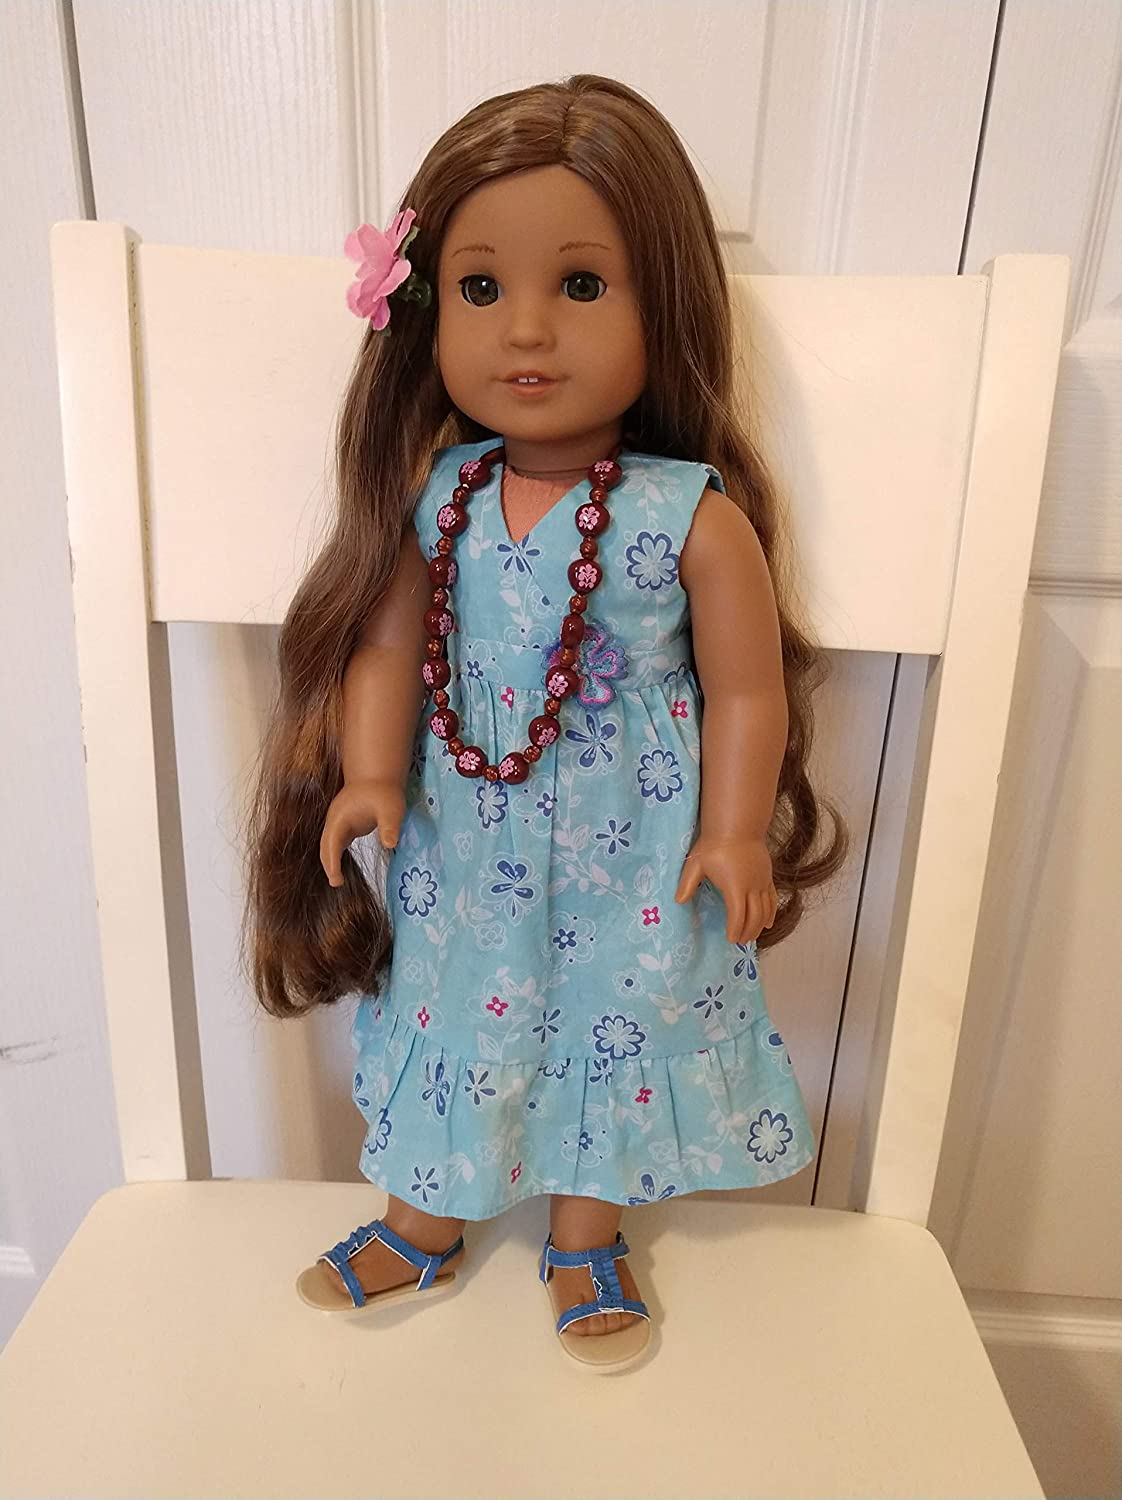 American Girl Doll 2011 Kanani Retired Meet Outfit Underwear Panty ONLY